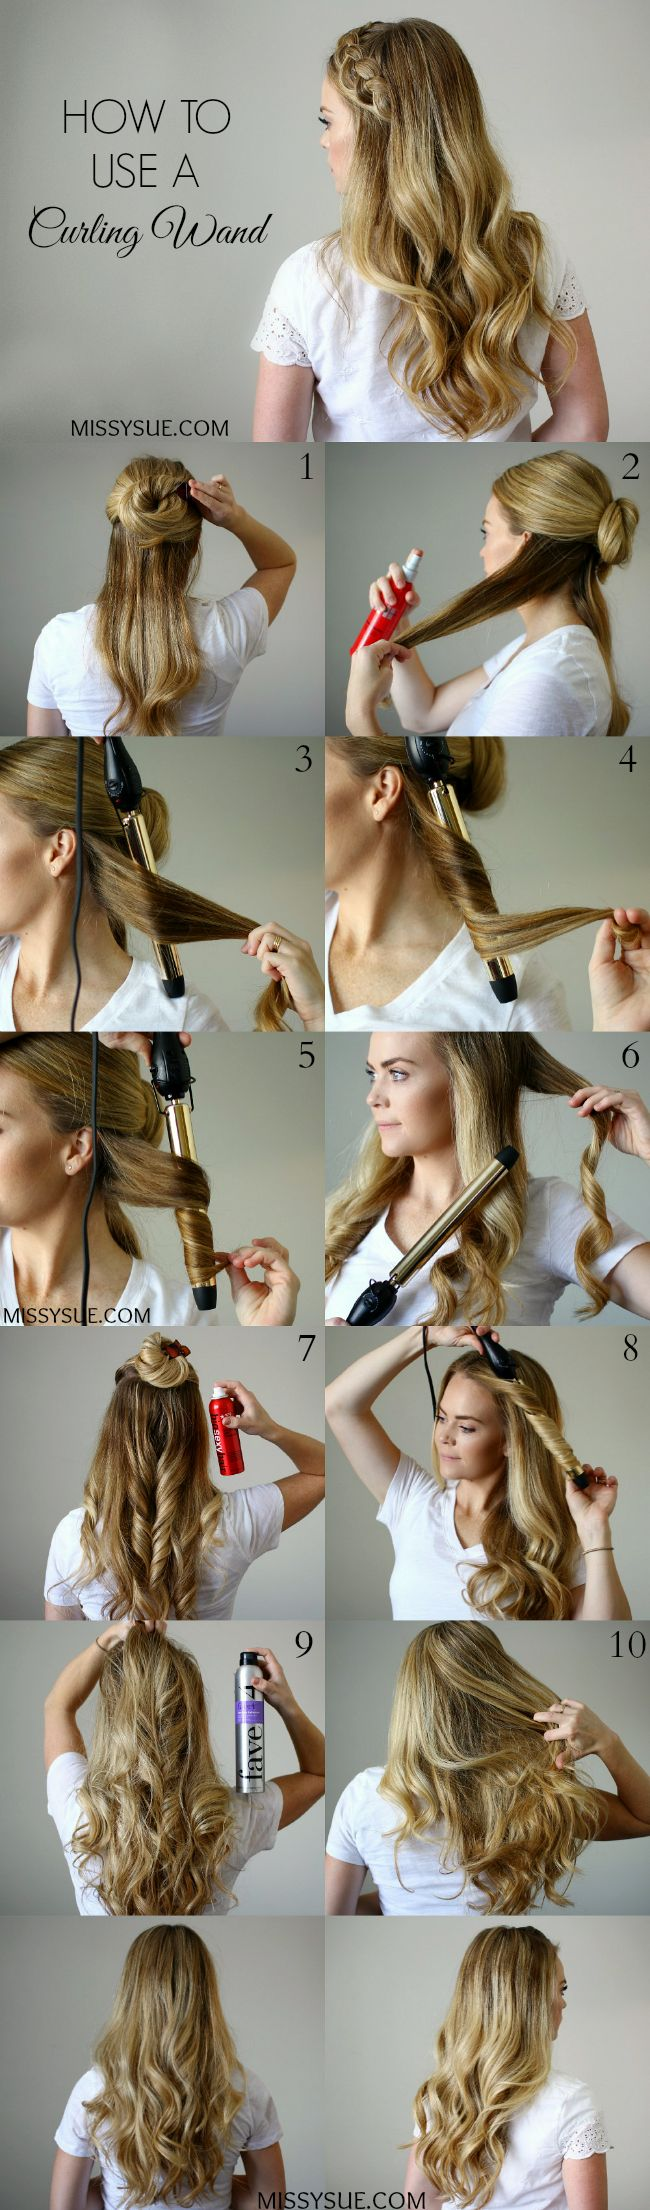 25 unique curling wand tips ideas on pinterest easy curls how to use a curling wand tutorial urmus Images